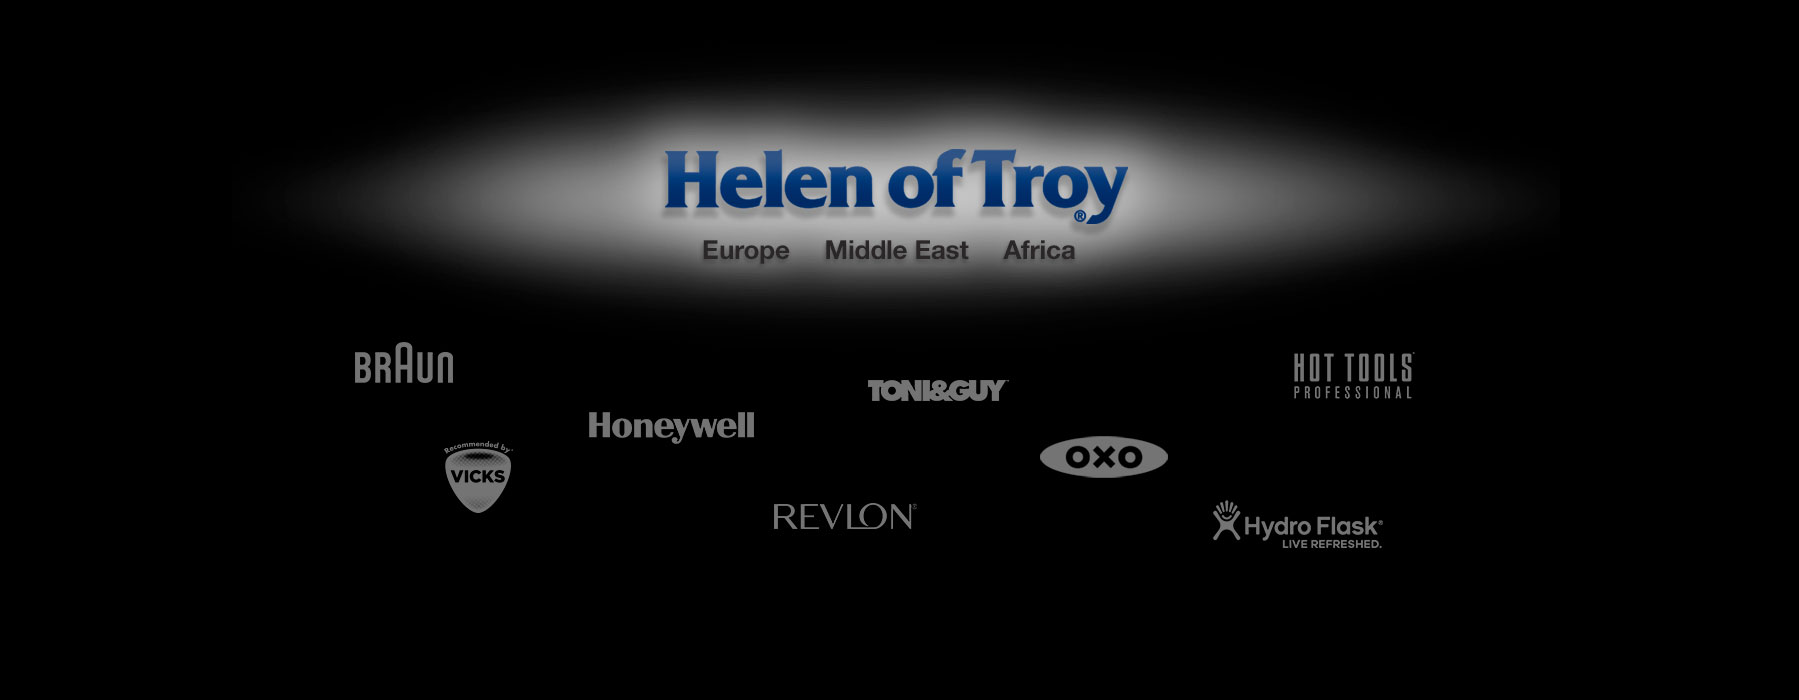 Helen of Troy - Kaz Europe Sàrl cover picture